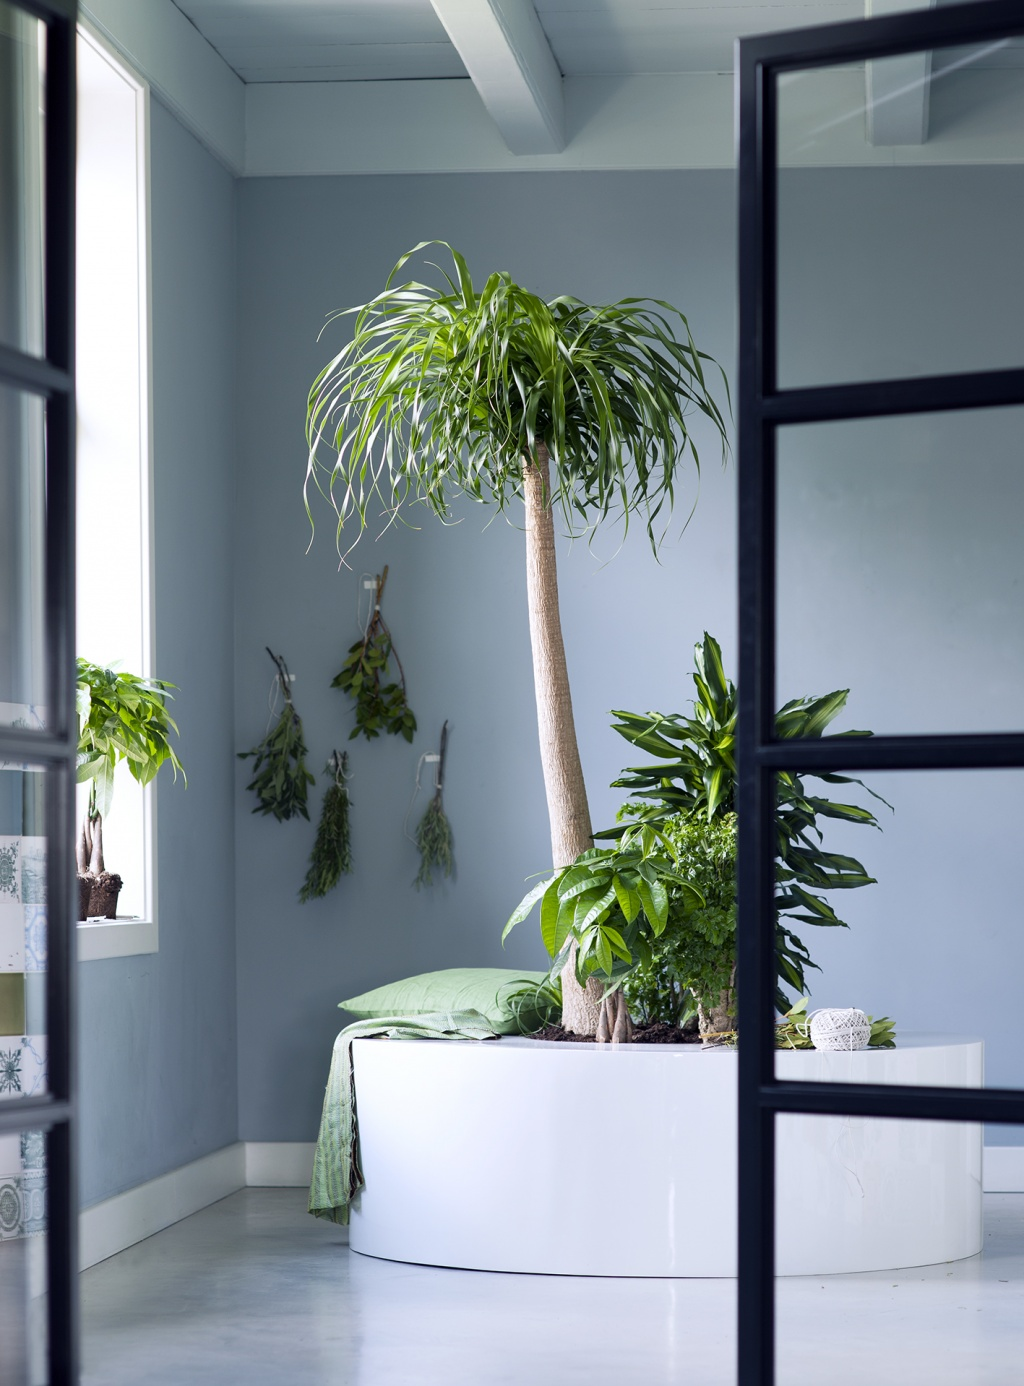 Interieur Met Hangplant Indoor Trees Are The Houseplants For January The Joy Of